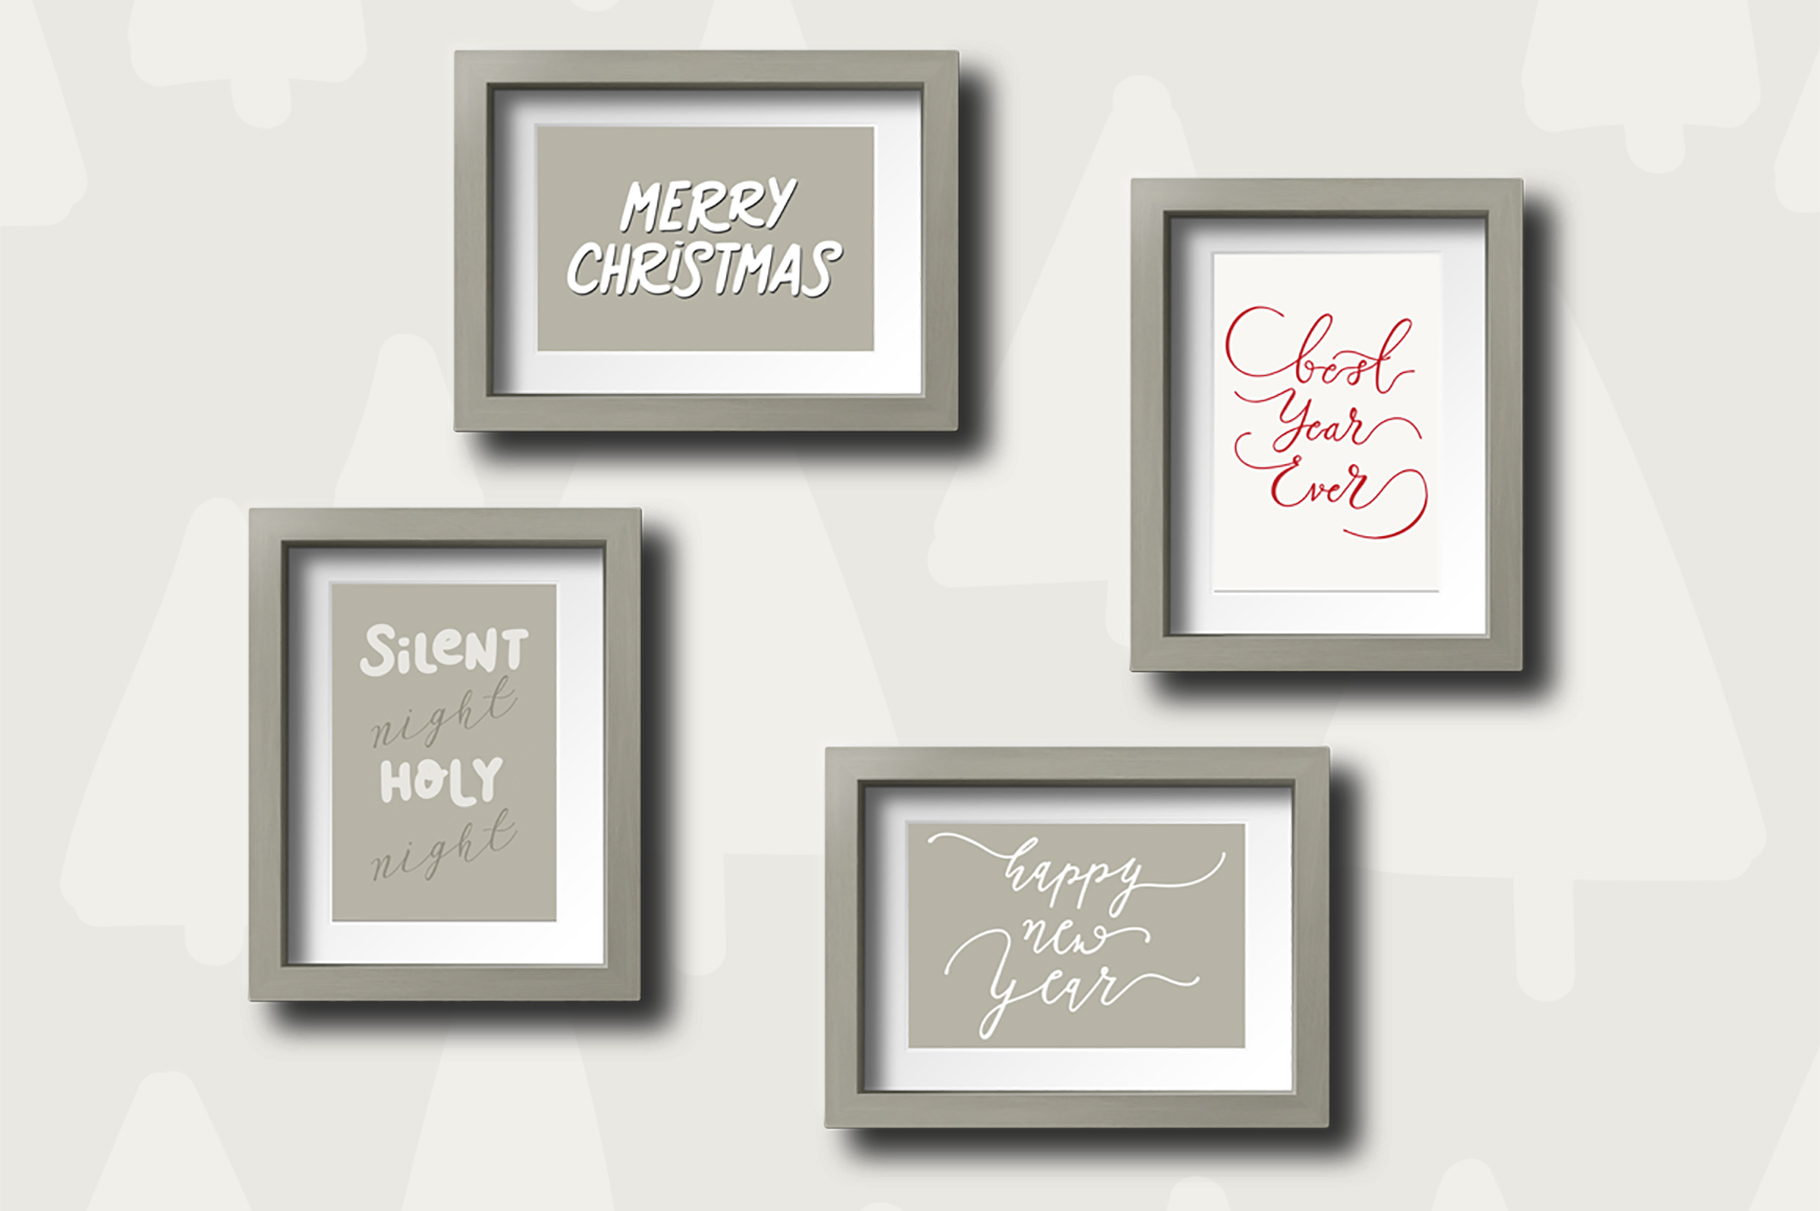 Sweet Christmas SVG Quotes example image 3